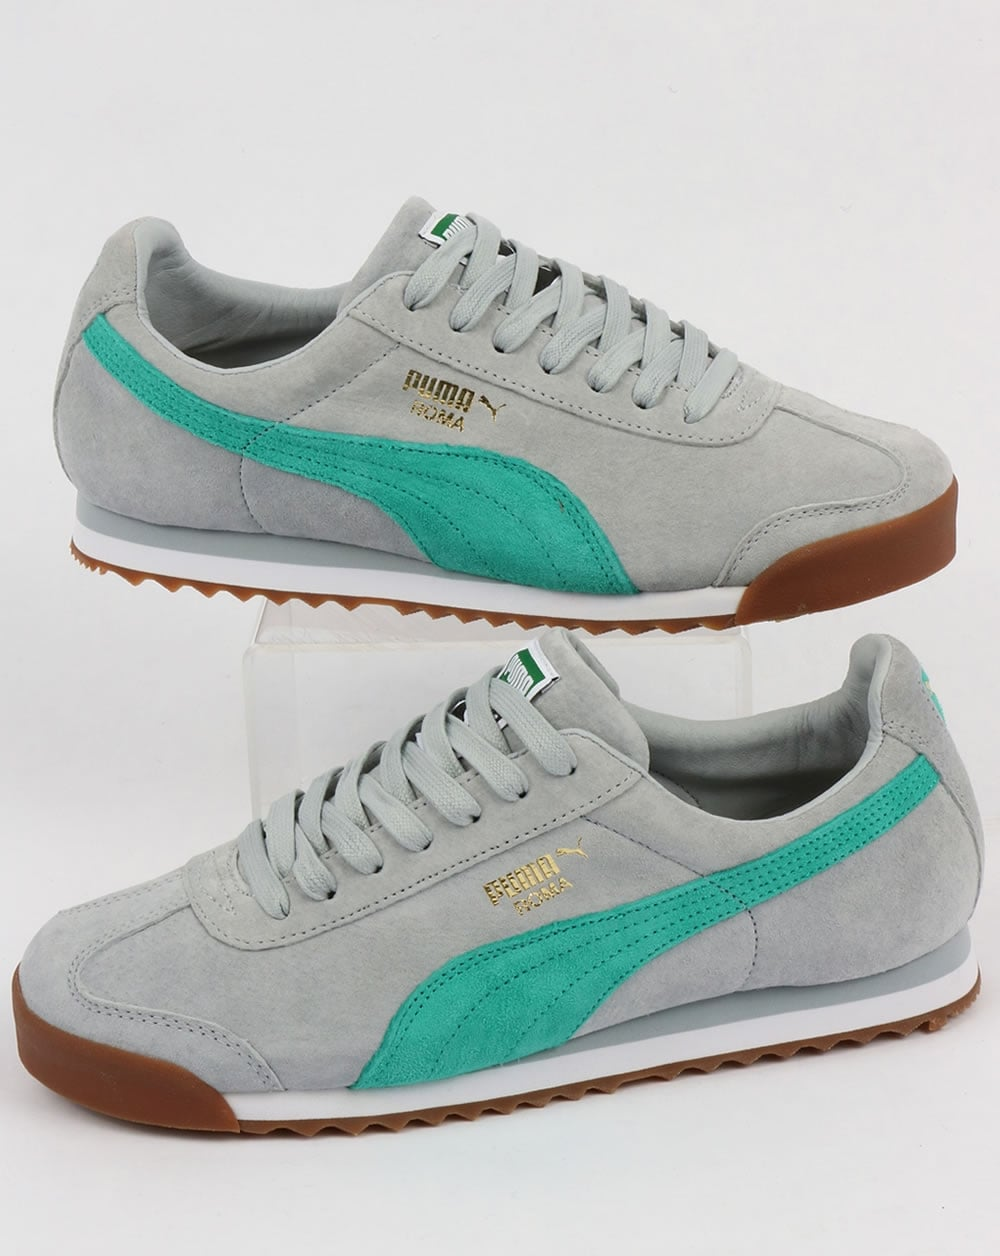 buy online bdb2b c8ce5 Puma Roma Trainers Blue/Green/White